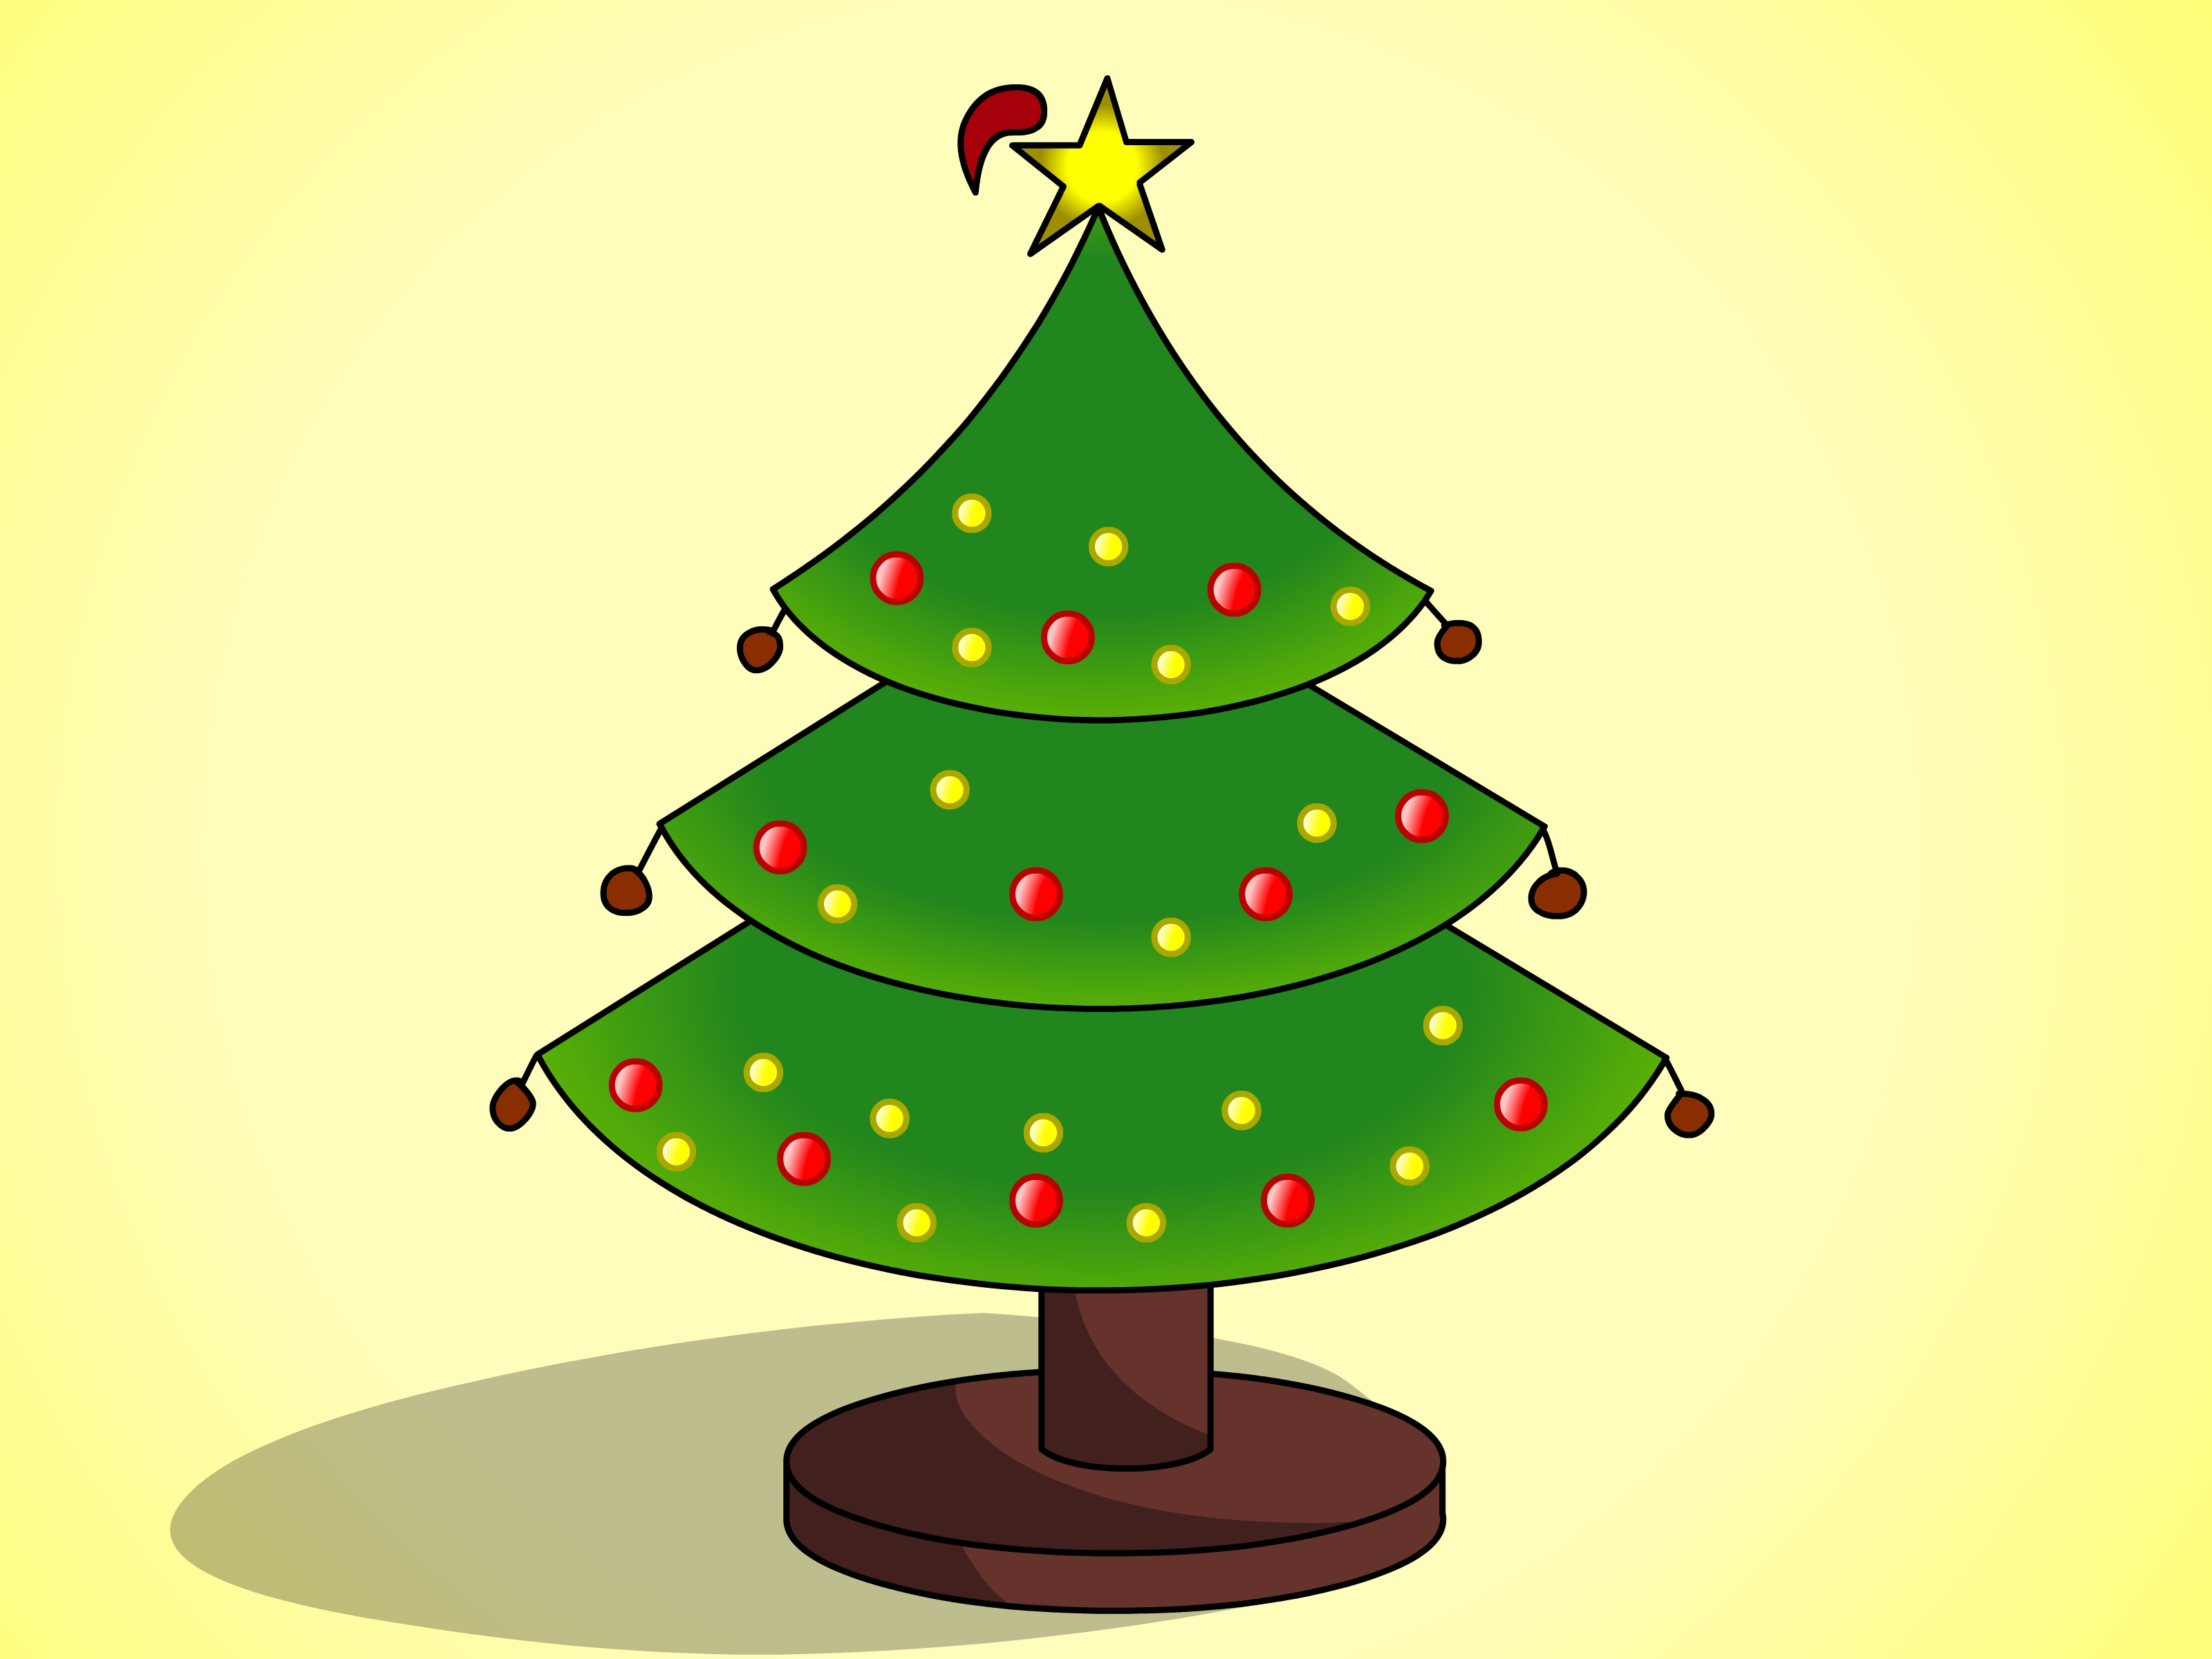 Christmas Trees Drawing at GetDrawings.com   Free for personal use ...